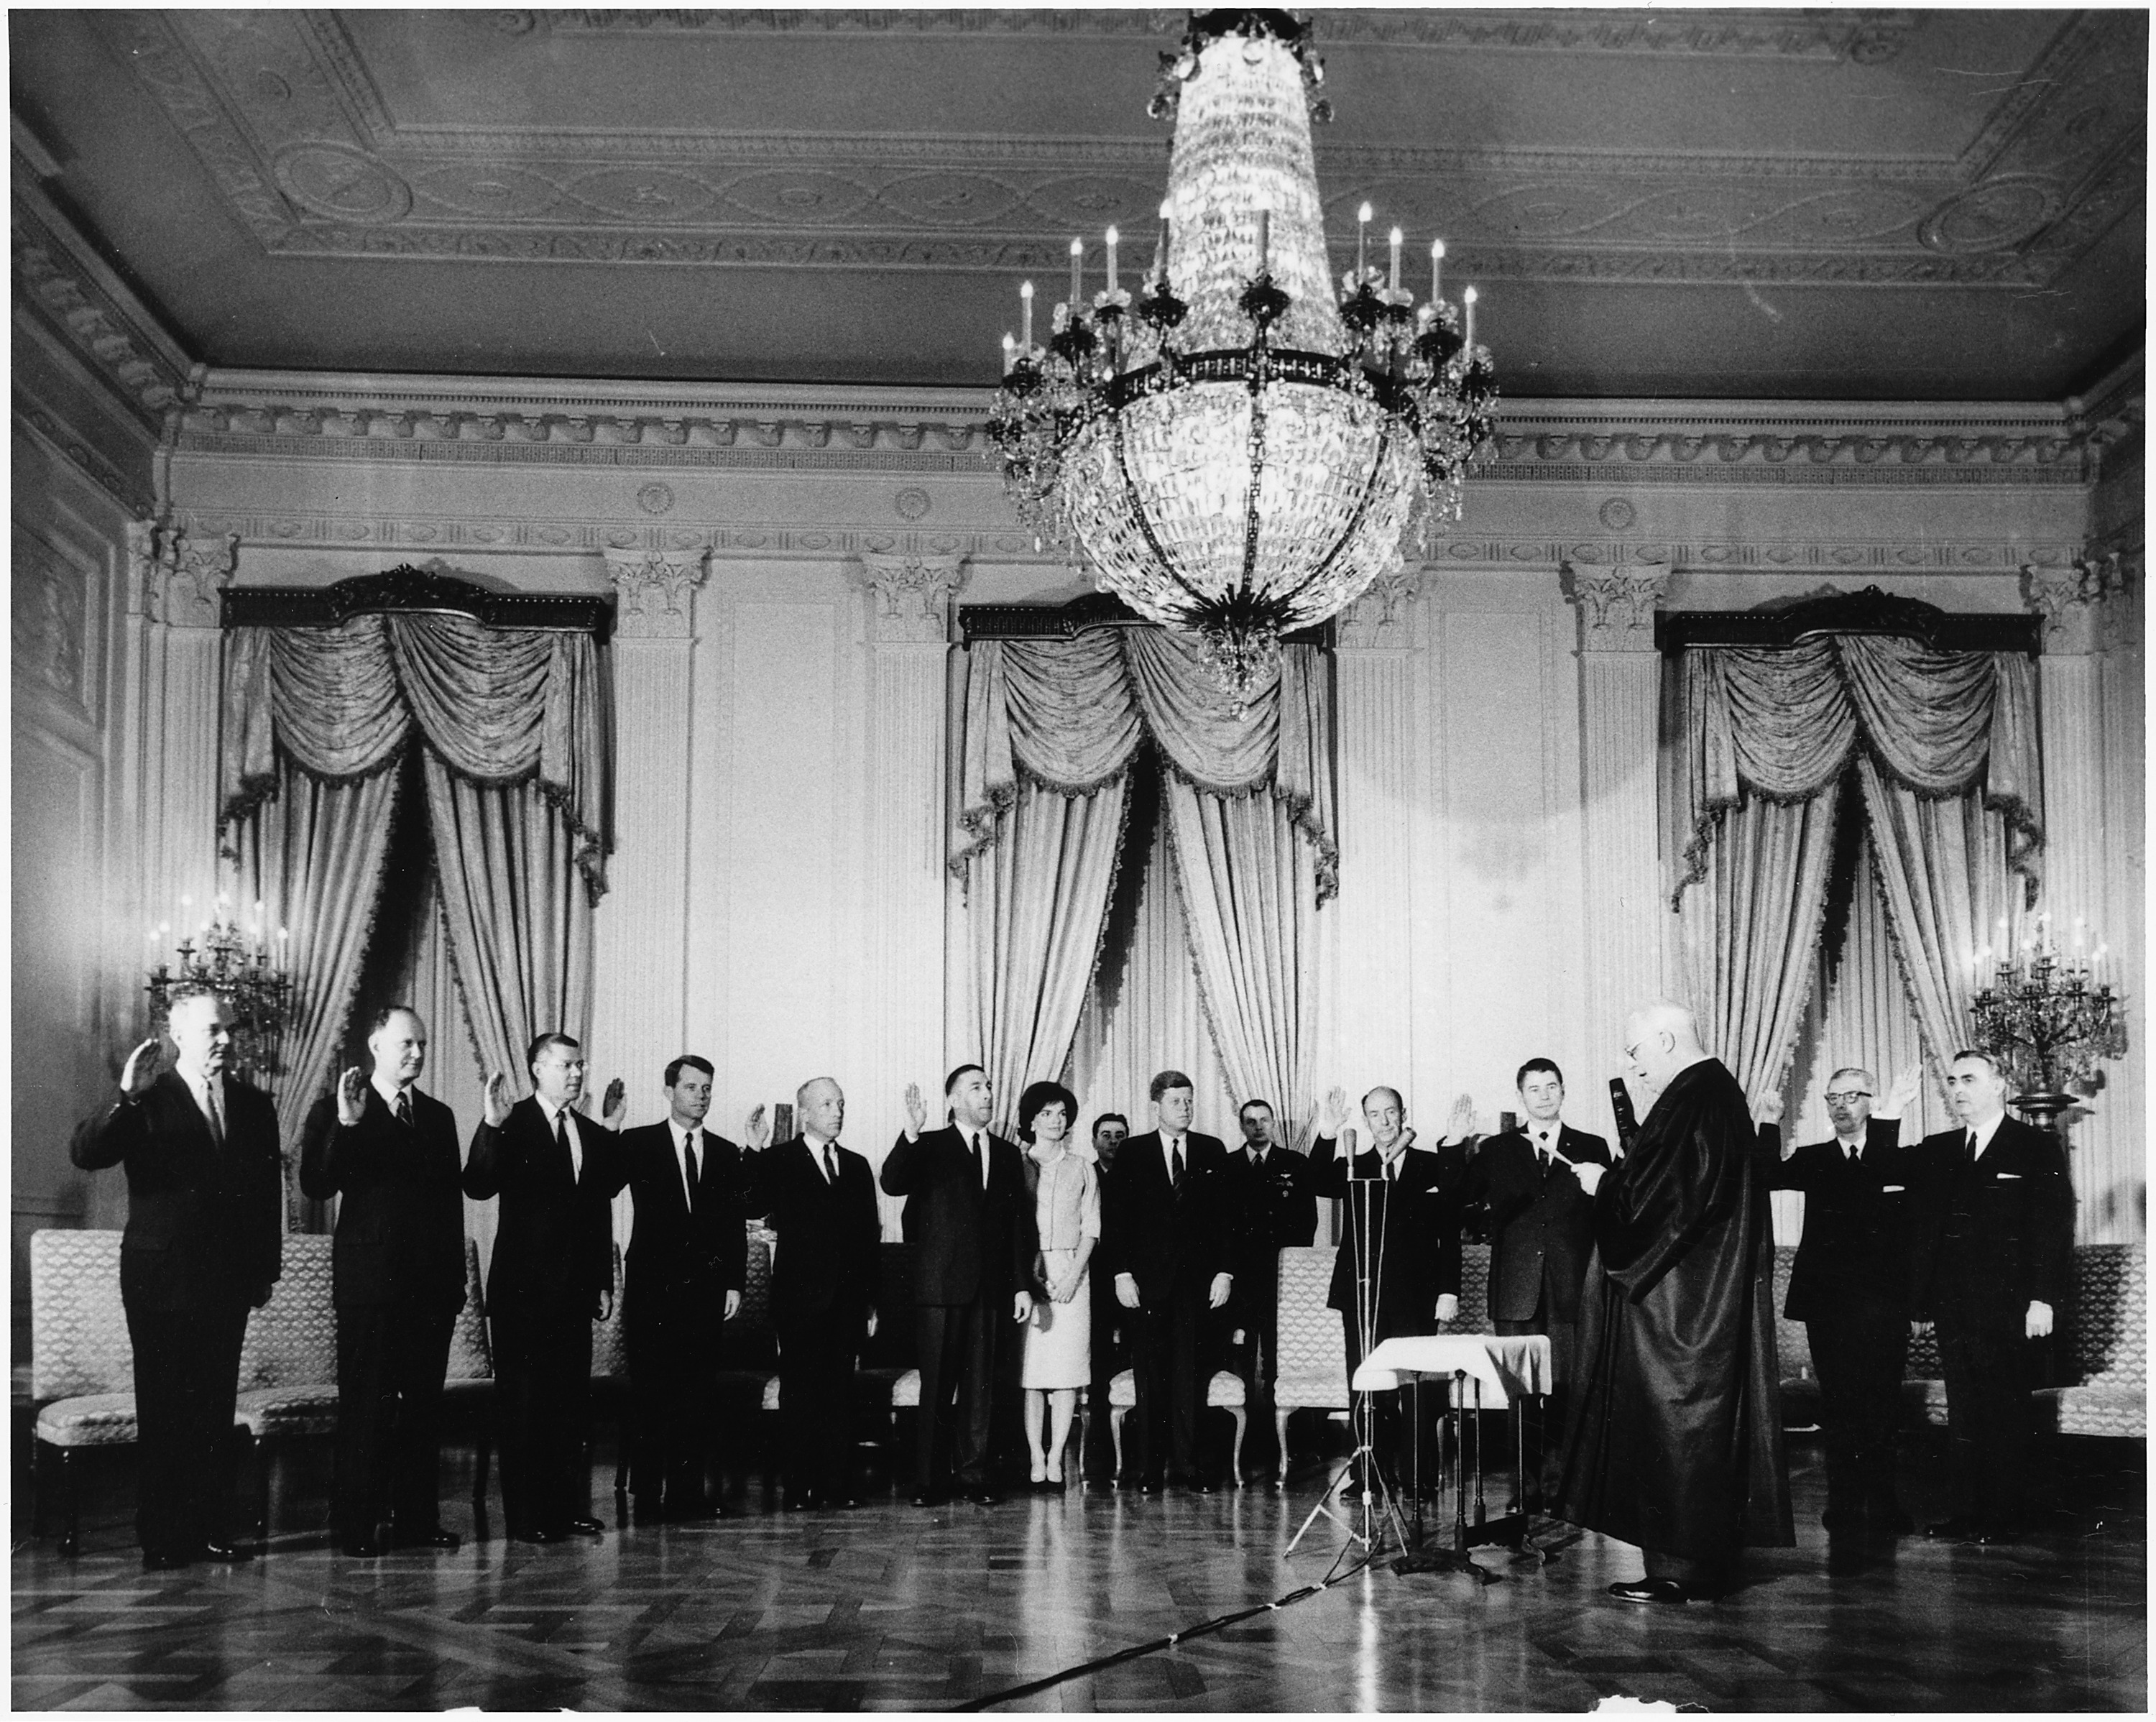 January 21:The Cabinet is sworn in by Chief Justice Earl Warren.